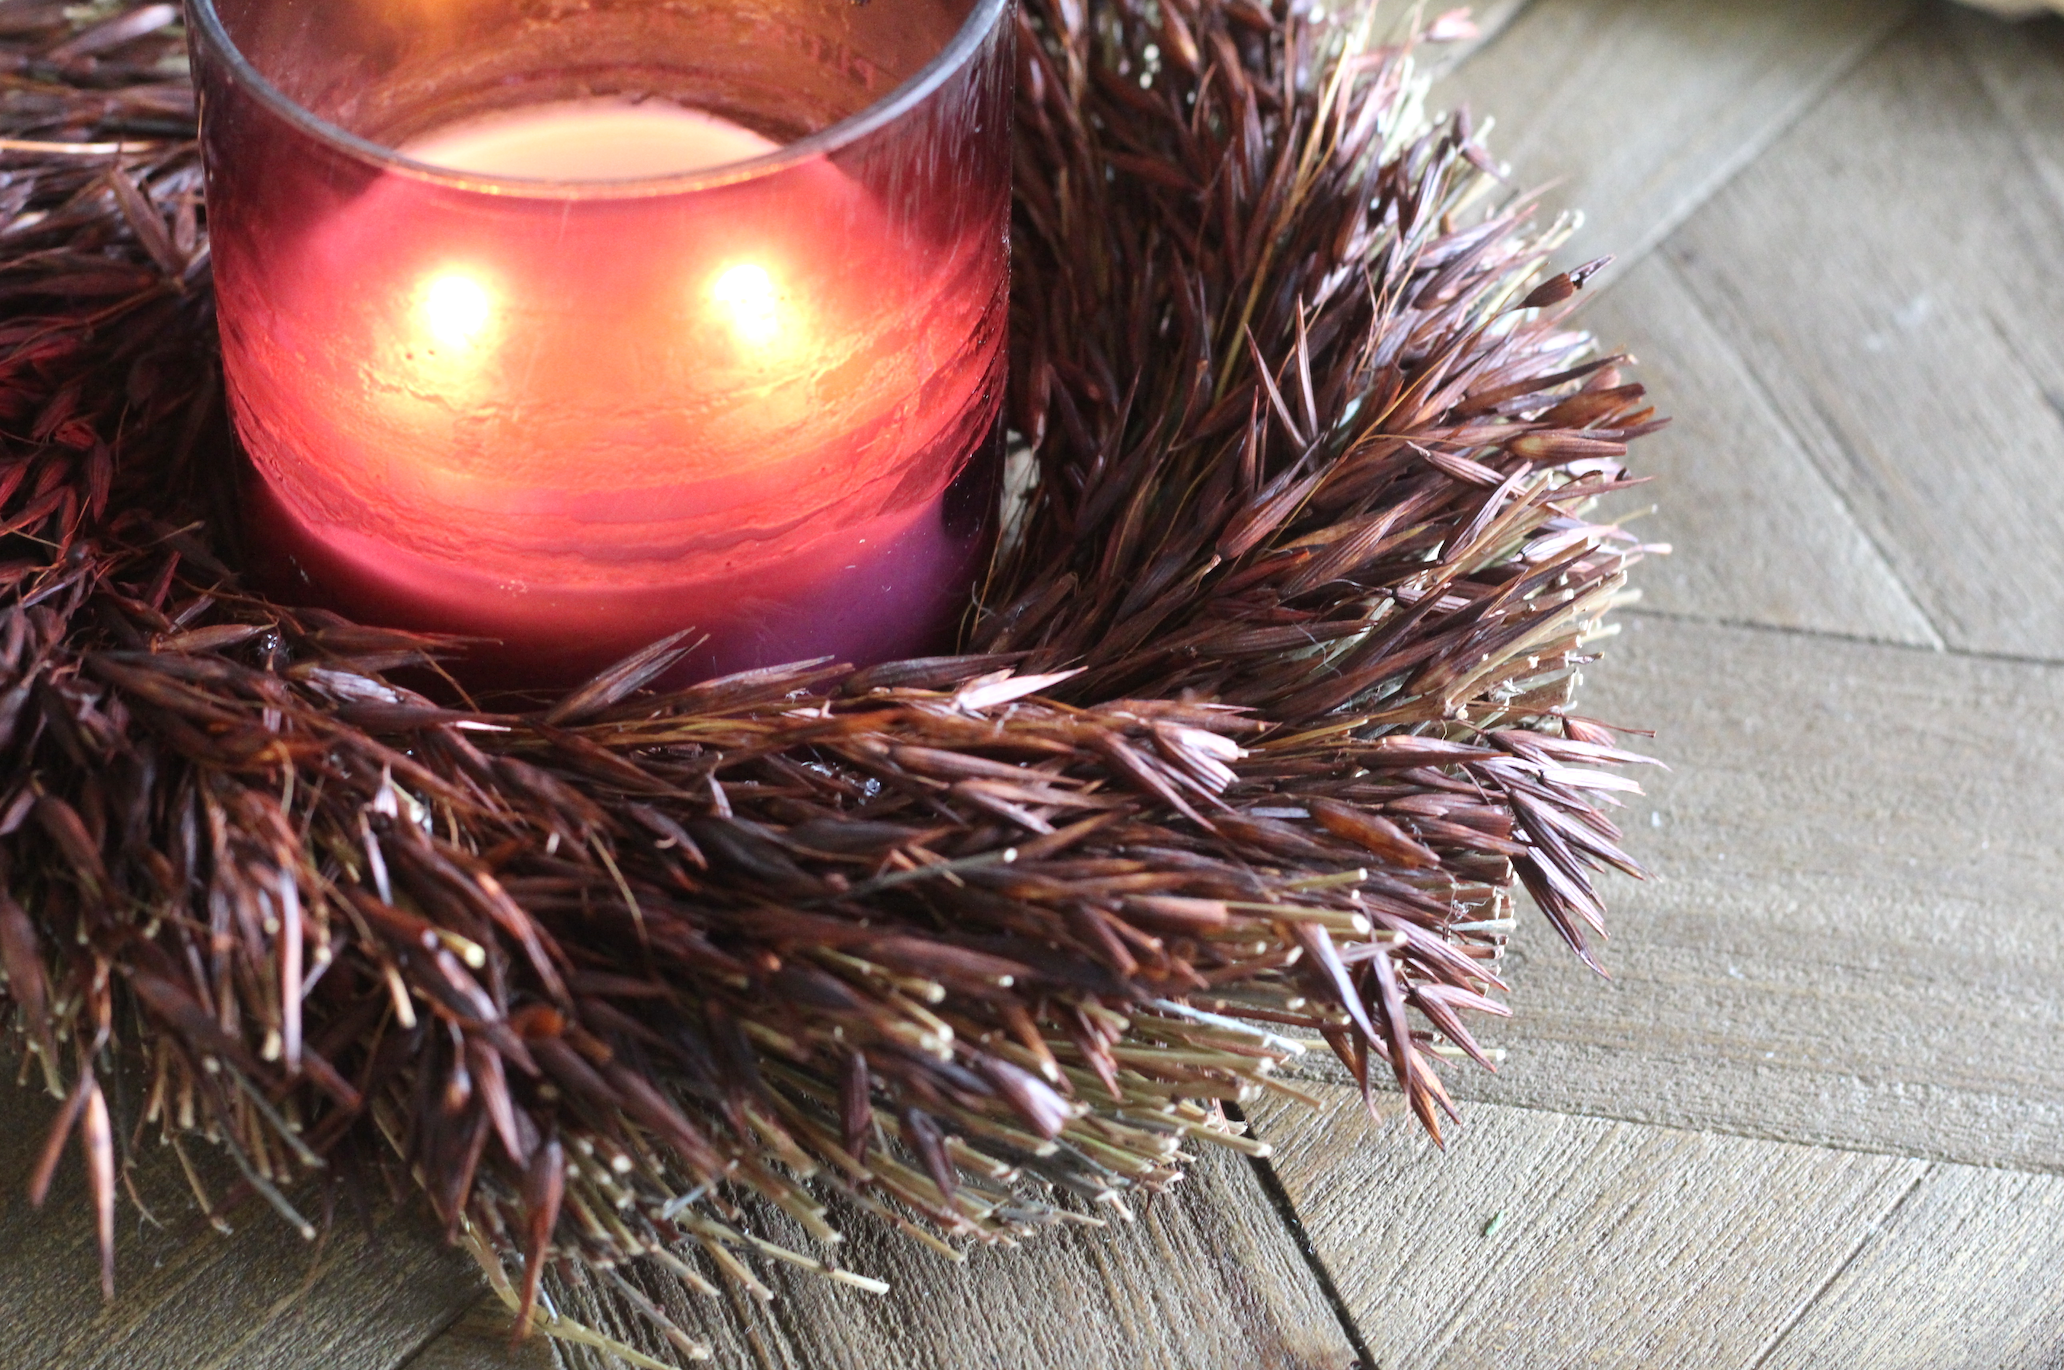 I love deeper, warmer scents in my home once the weather turns cooler.